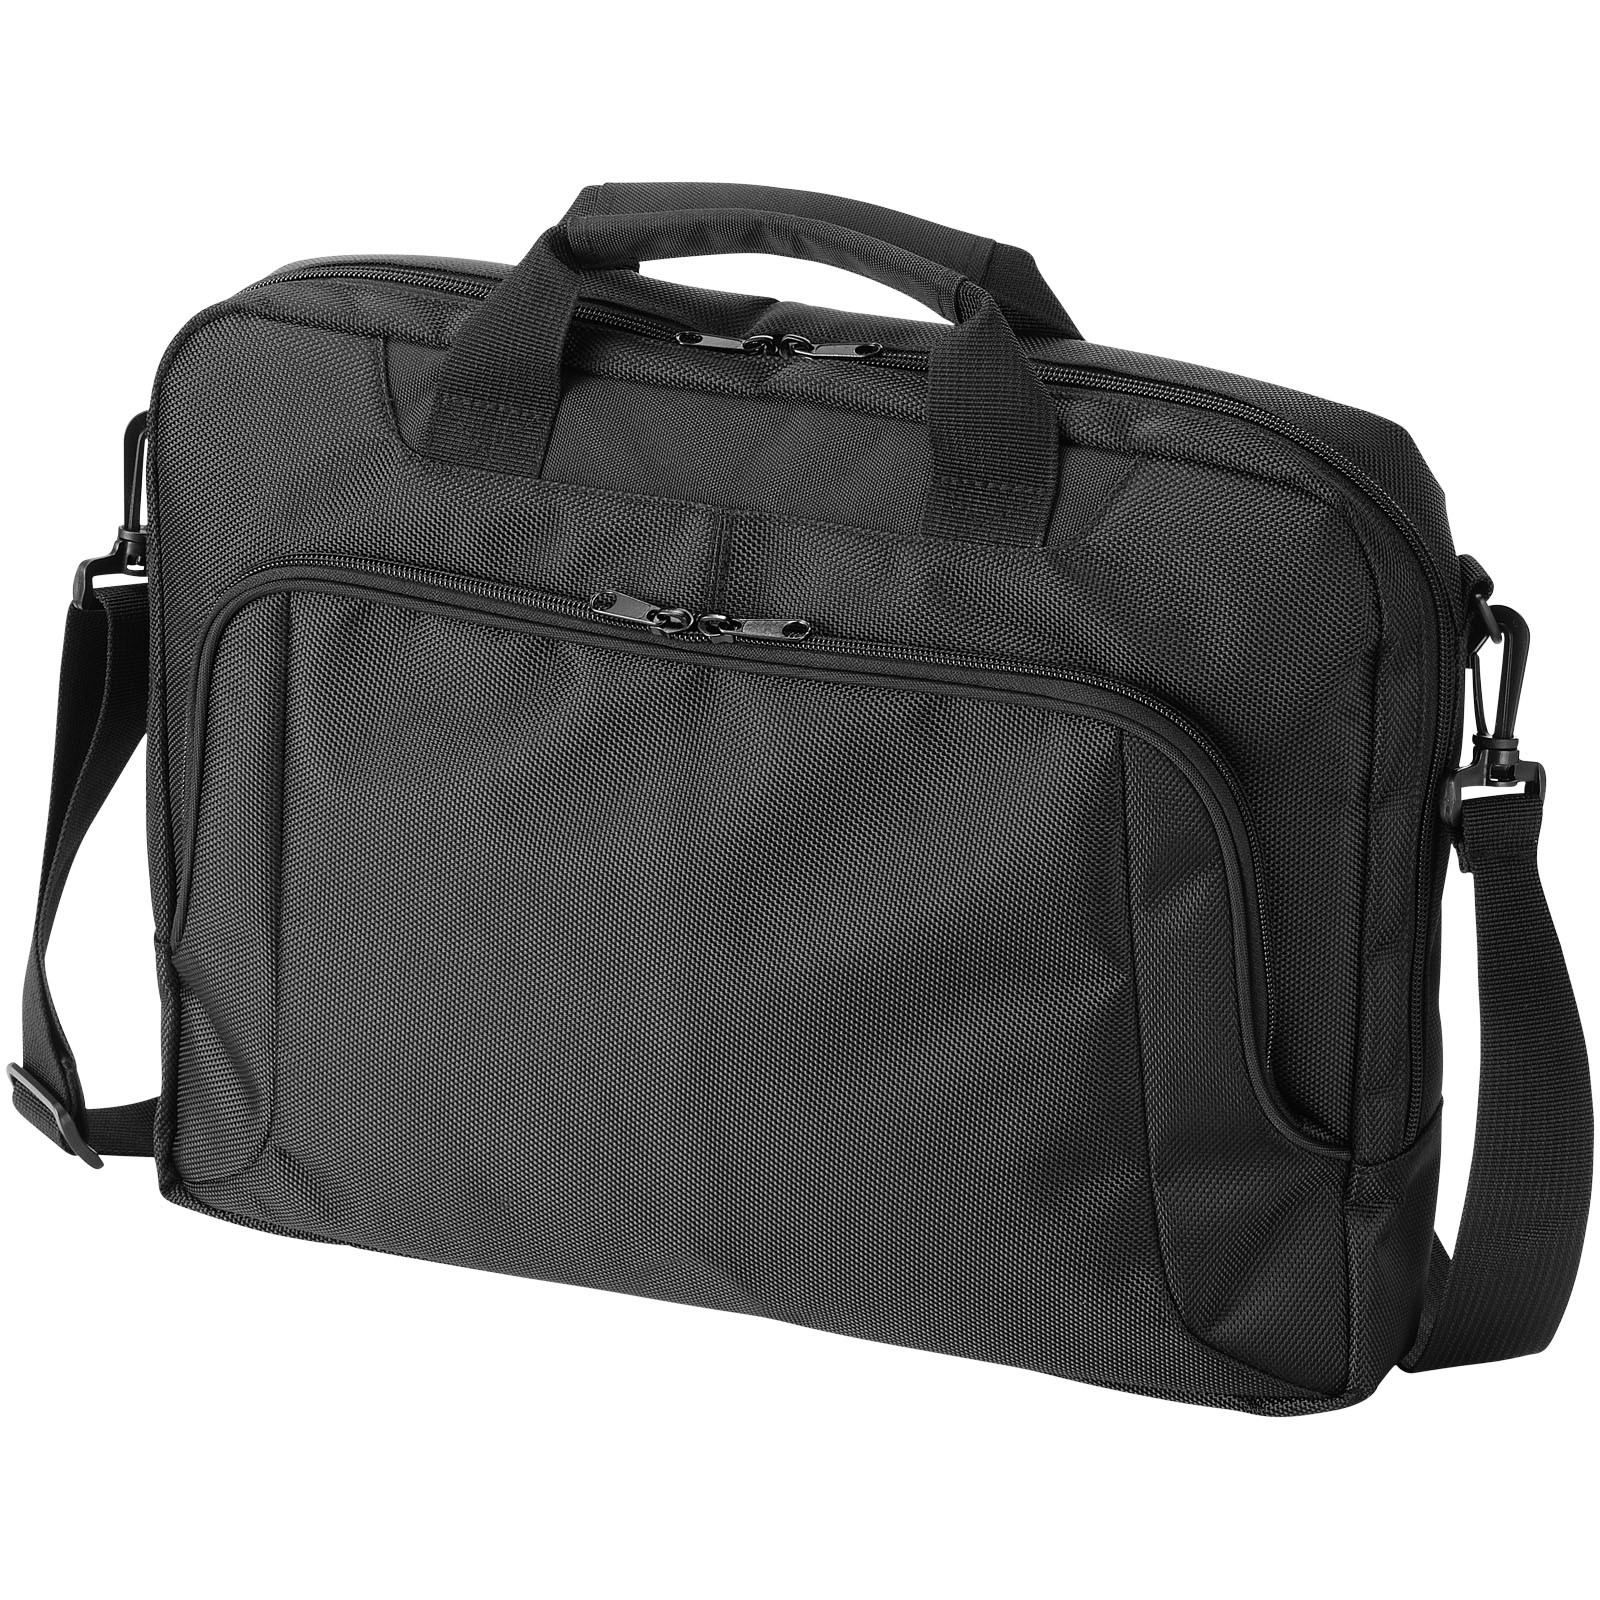 "Jersey 15.6"" laptop conference bag"